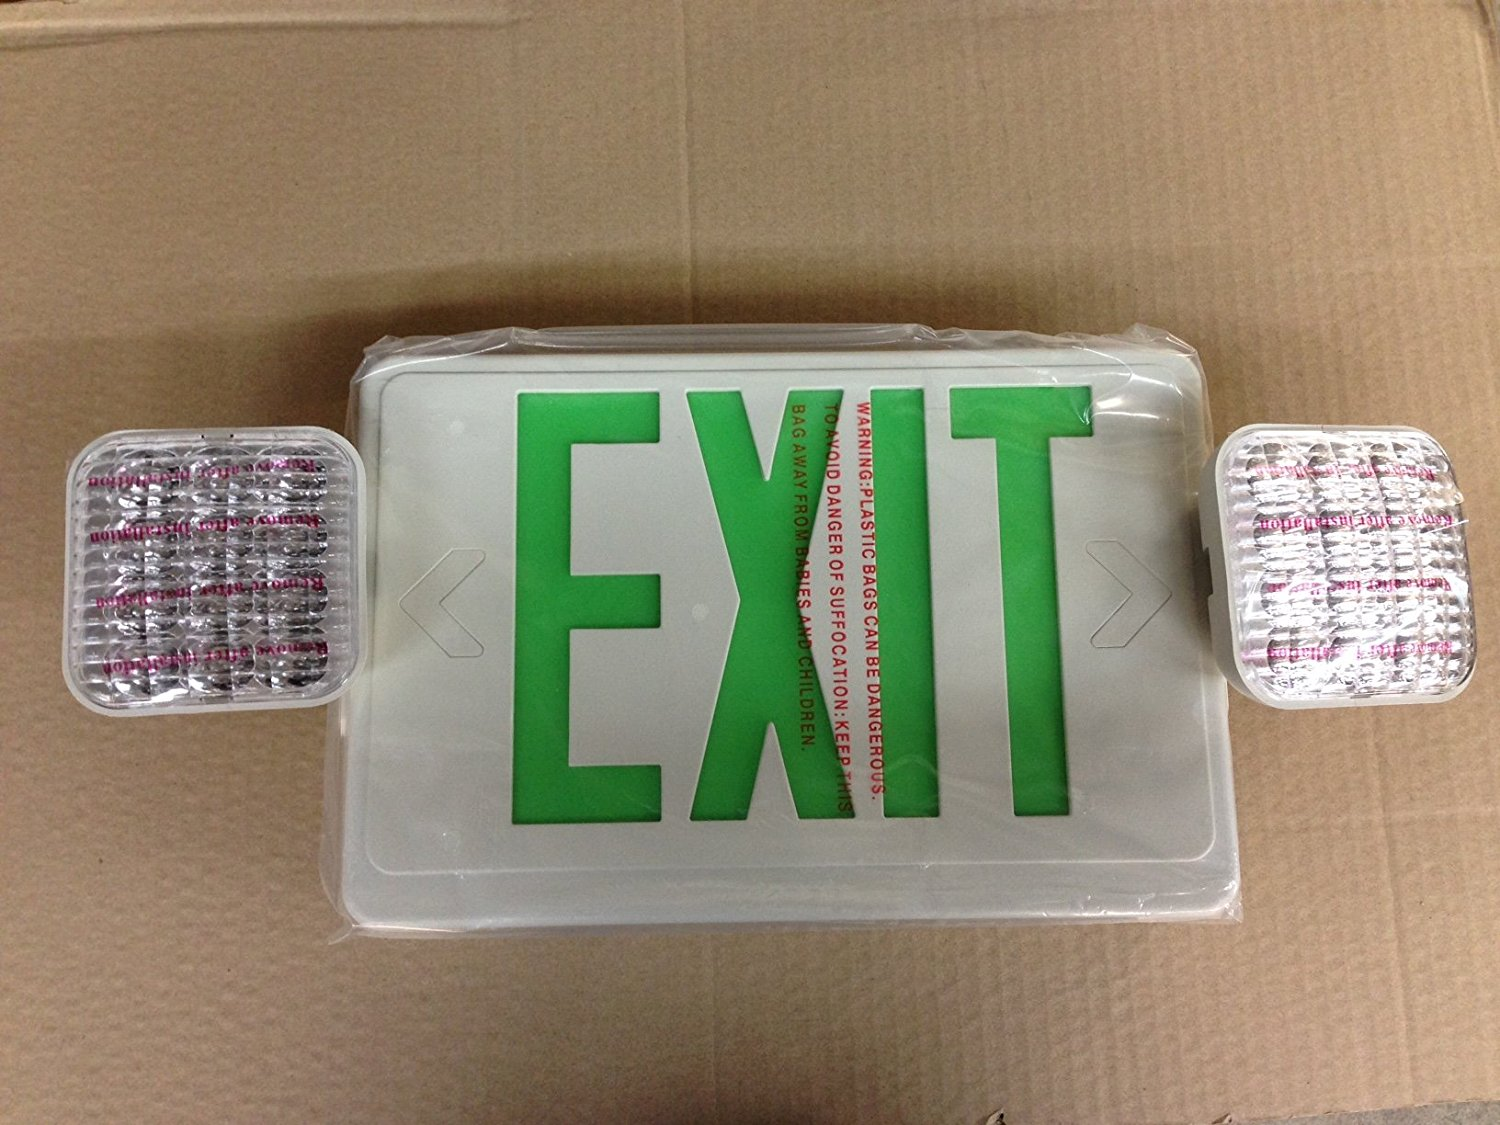 ELITE ELX-LED-703-G-W GREEN LED EXIT SIGN & EMERGENCY LIGHT COMBINATION WITH BATTERY BACK UP 120/277V